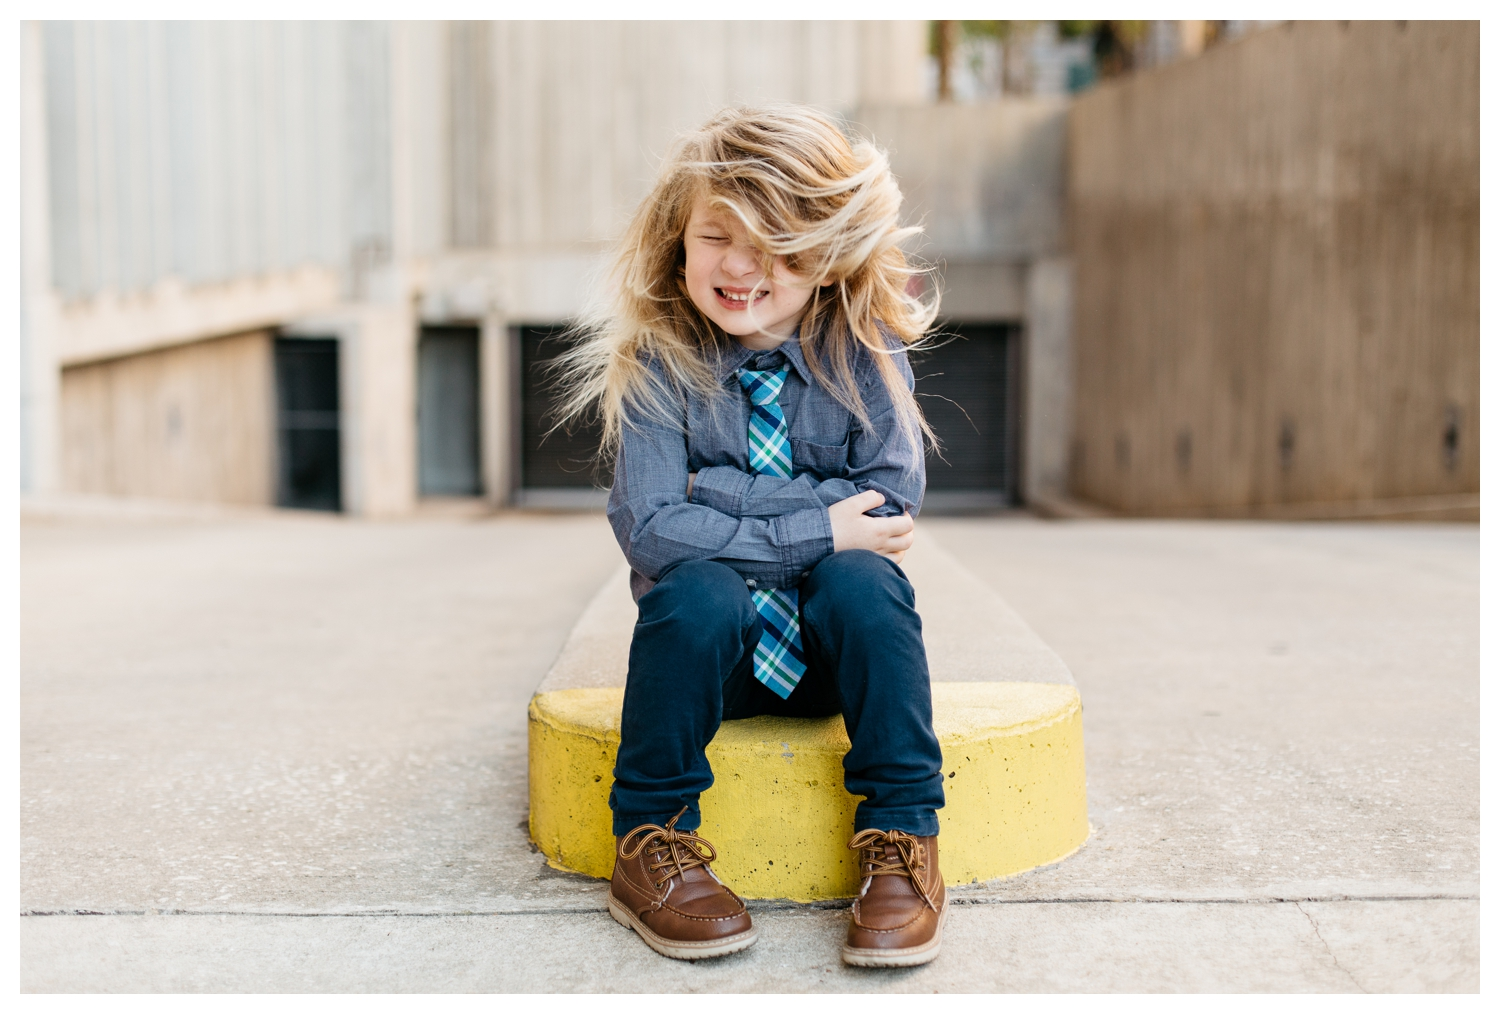 Boy Swings Long Blonde Hair Orlando Photographer Kids Session.jpg